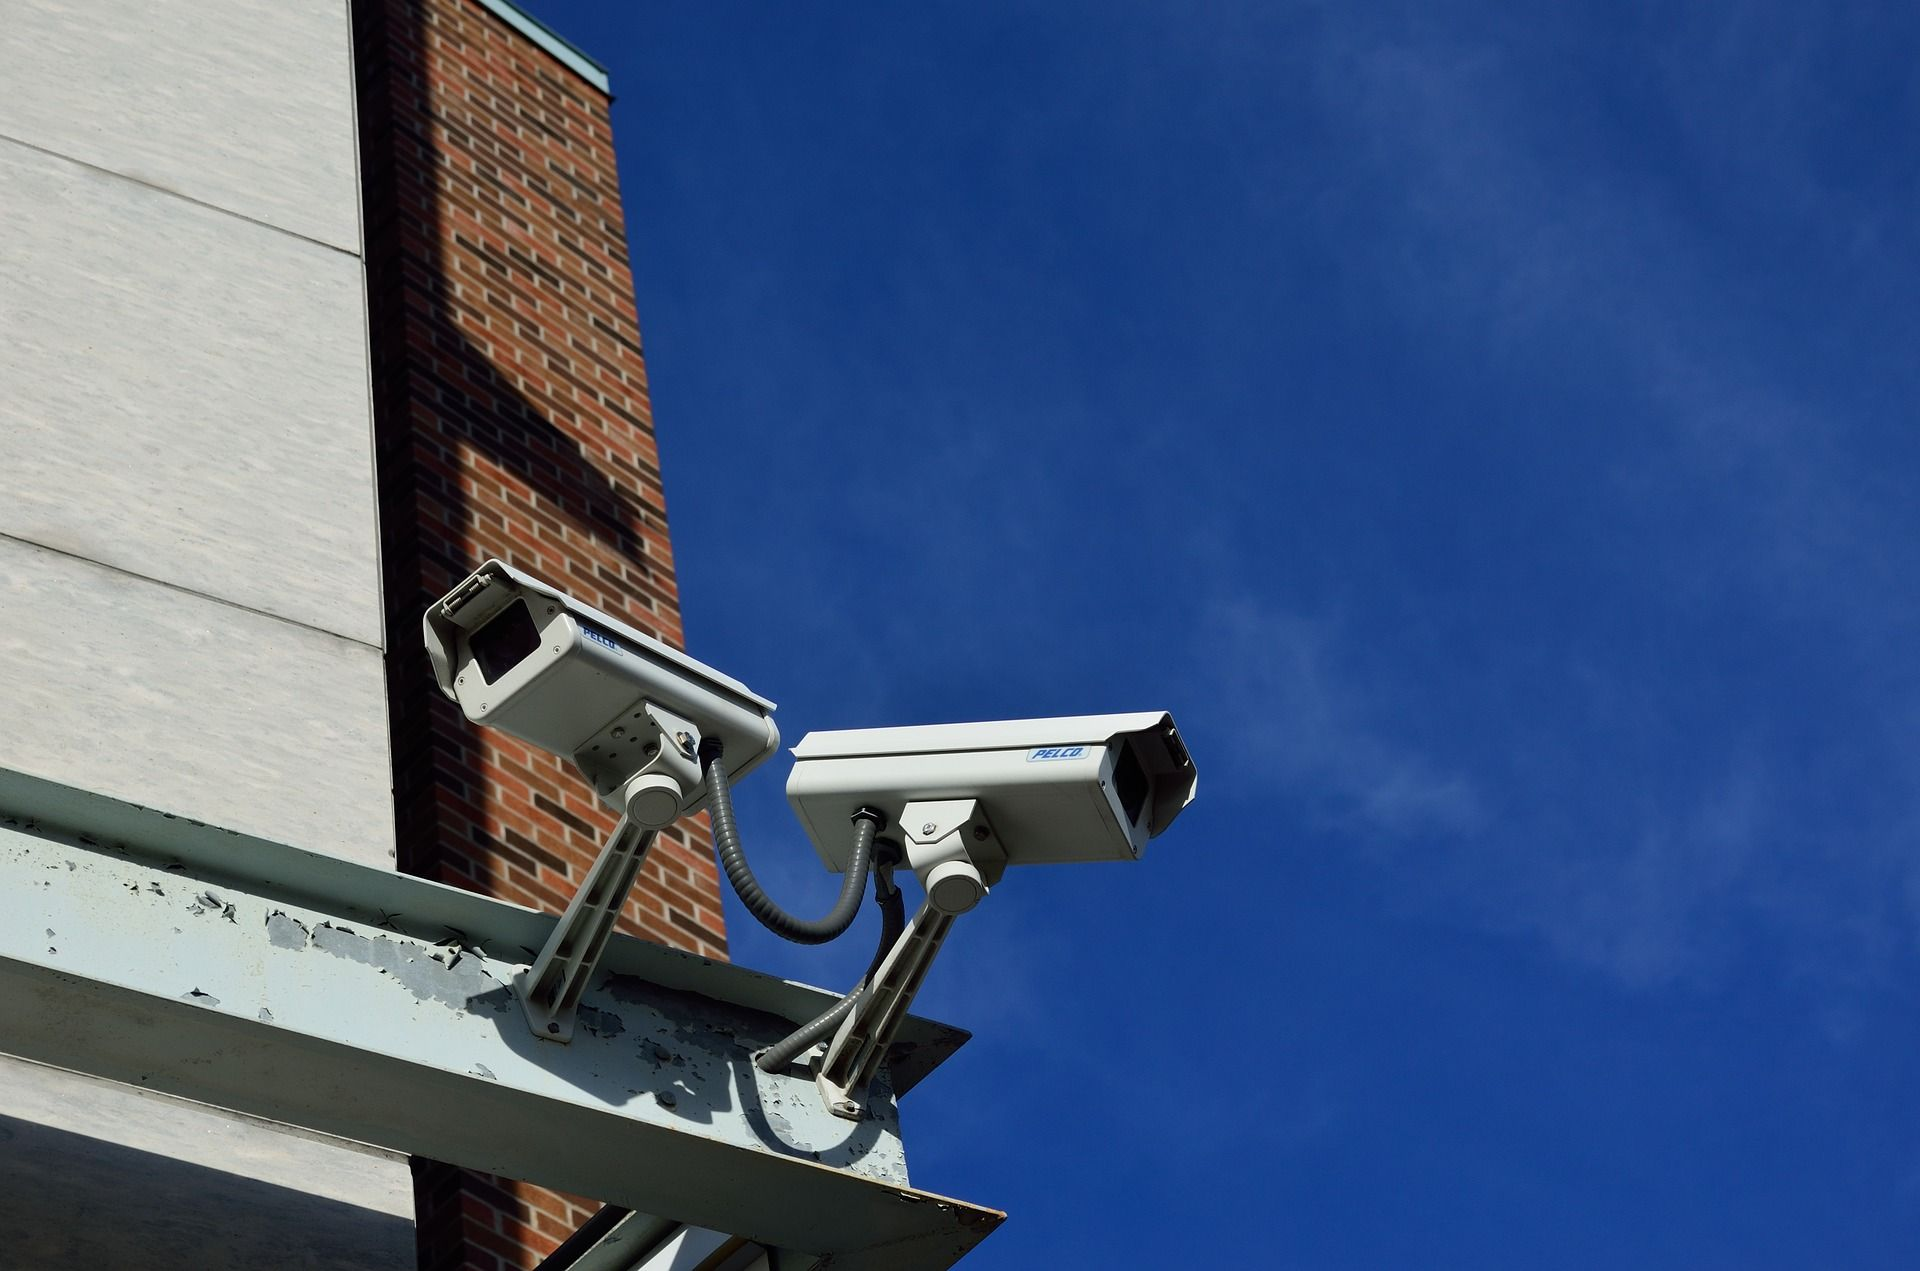 Two CCTV cameras on a building